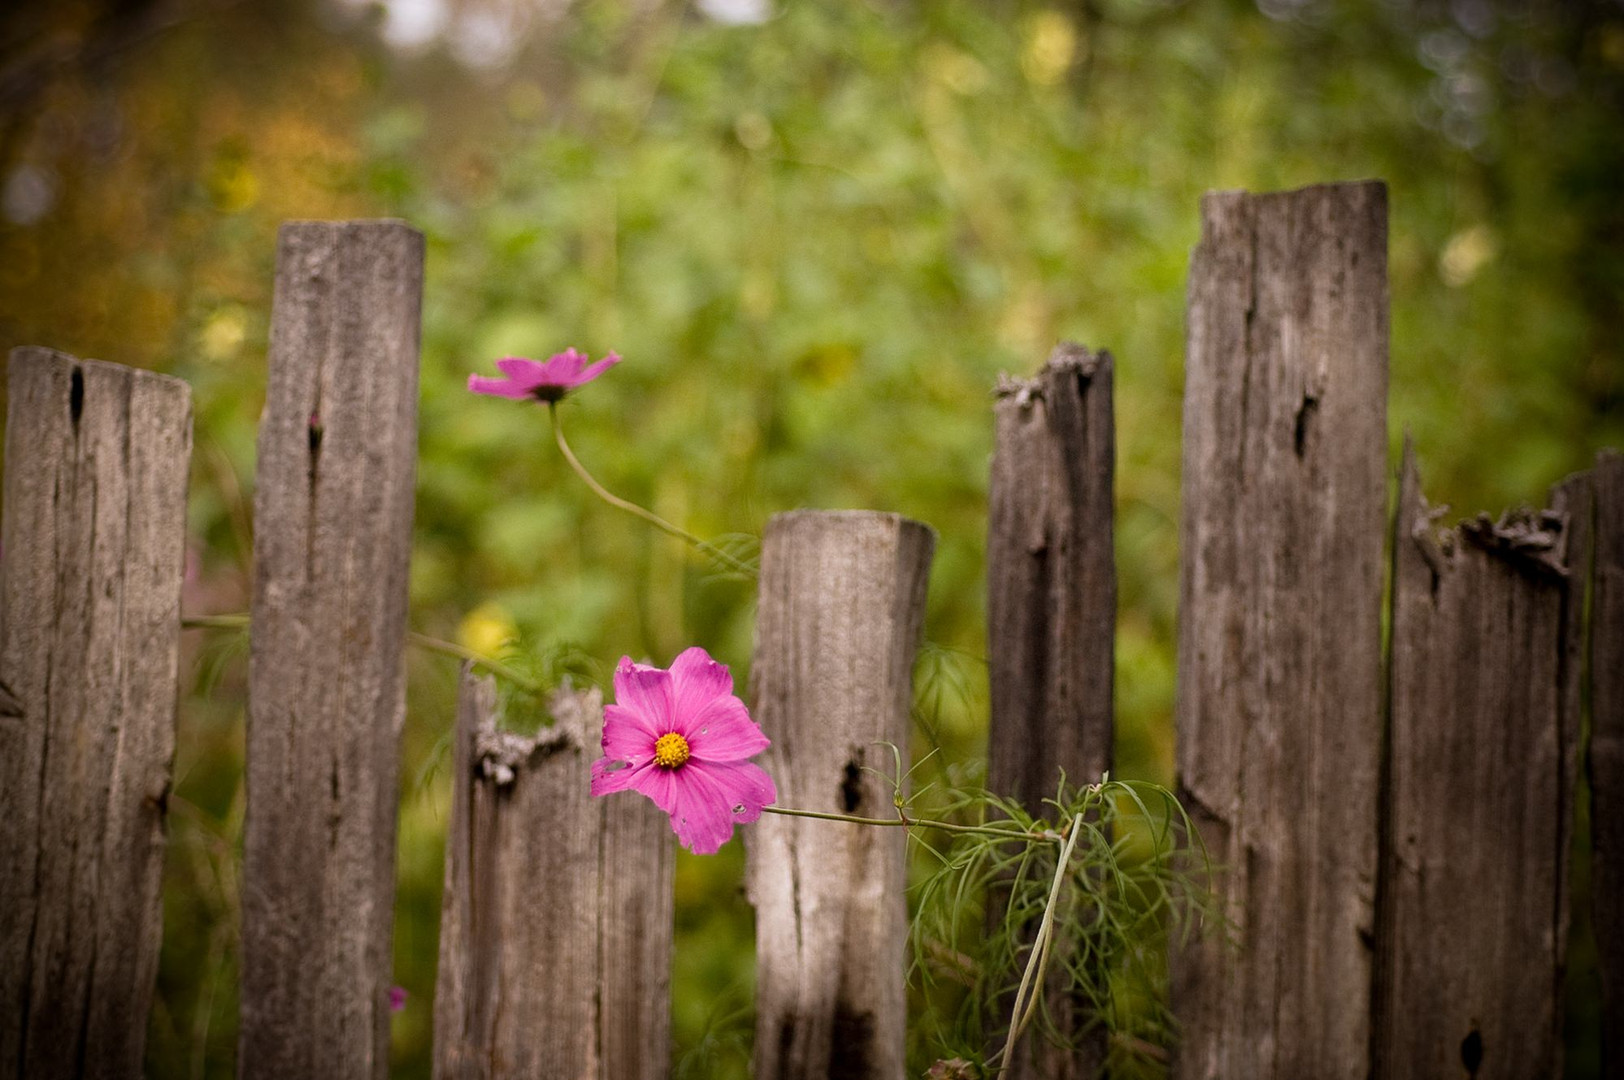 Flower-and-Fence.jpg